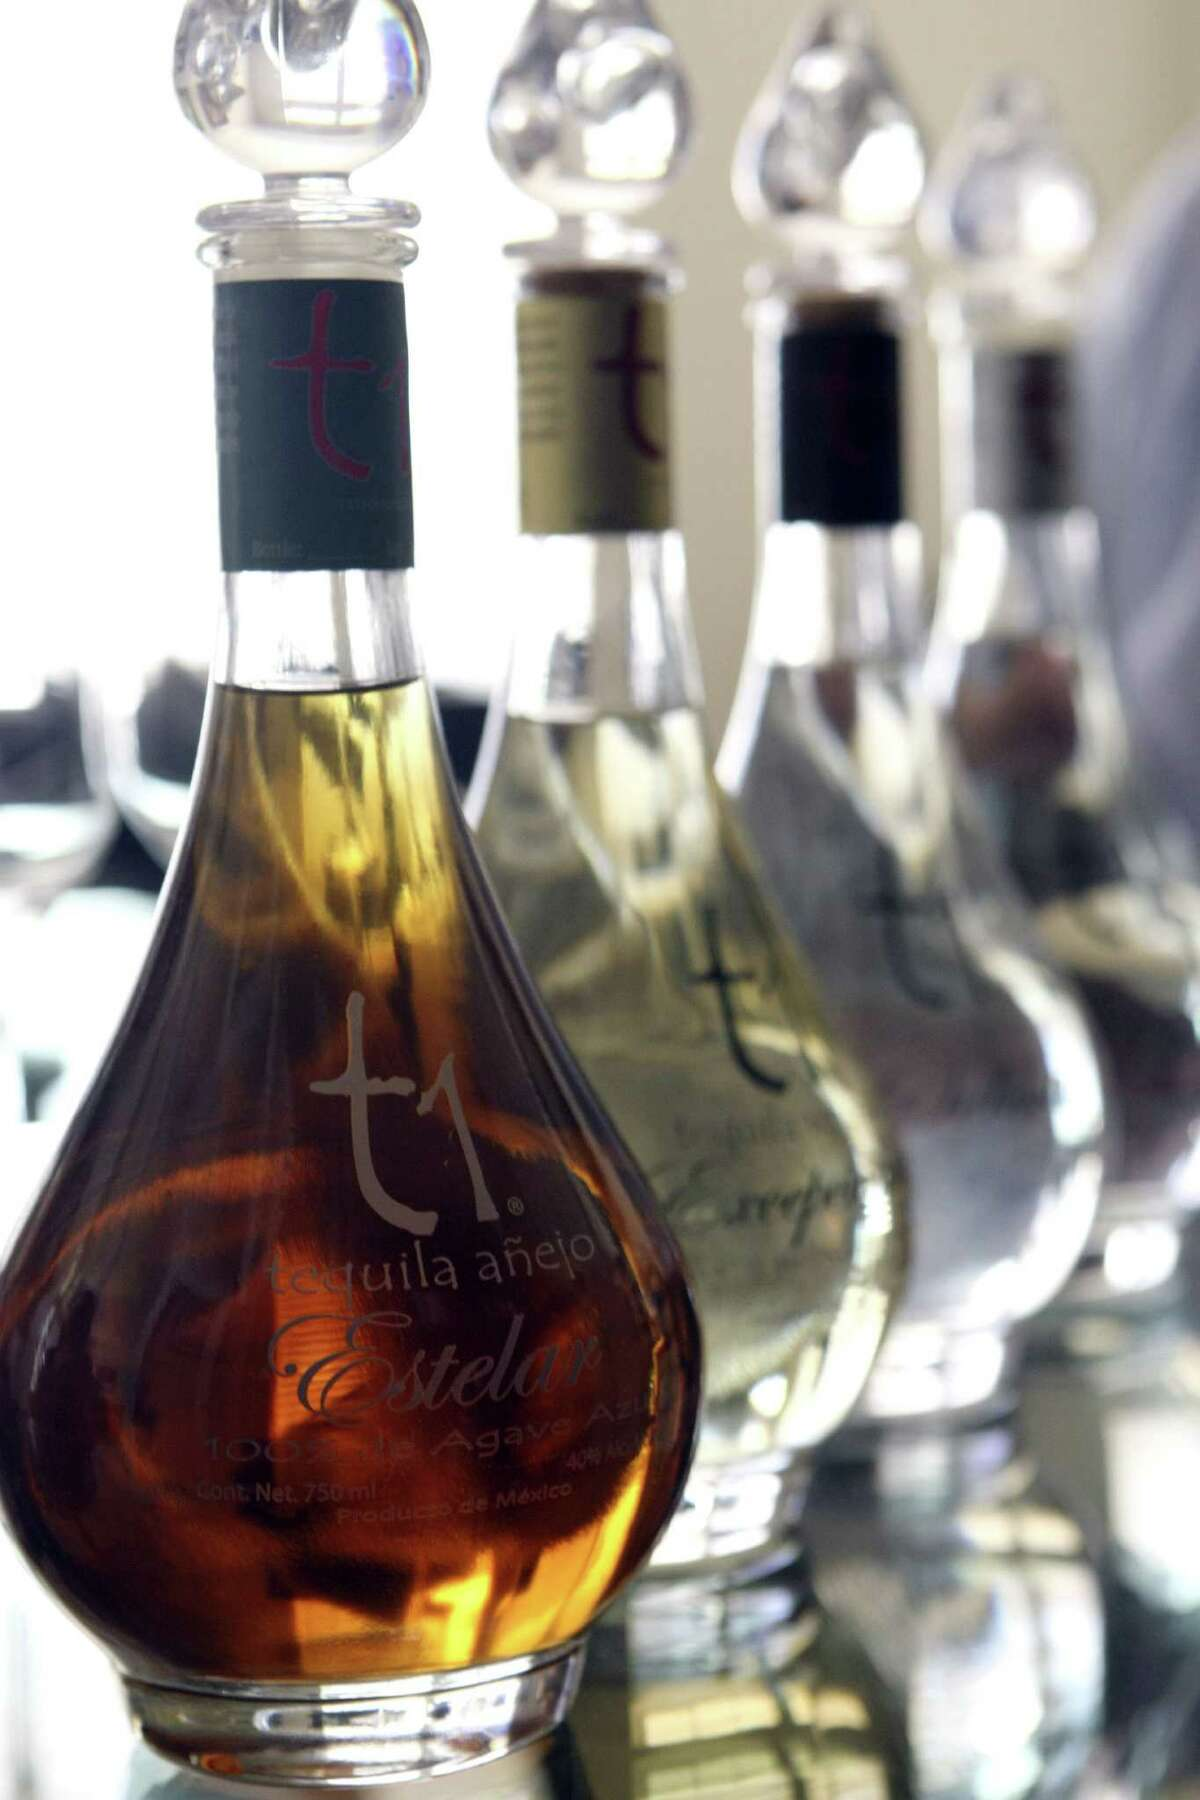 T1 tequila uno is the U.S. counterpart to Chinaco tequila, which was founded by González's father.